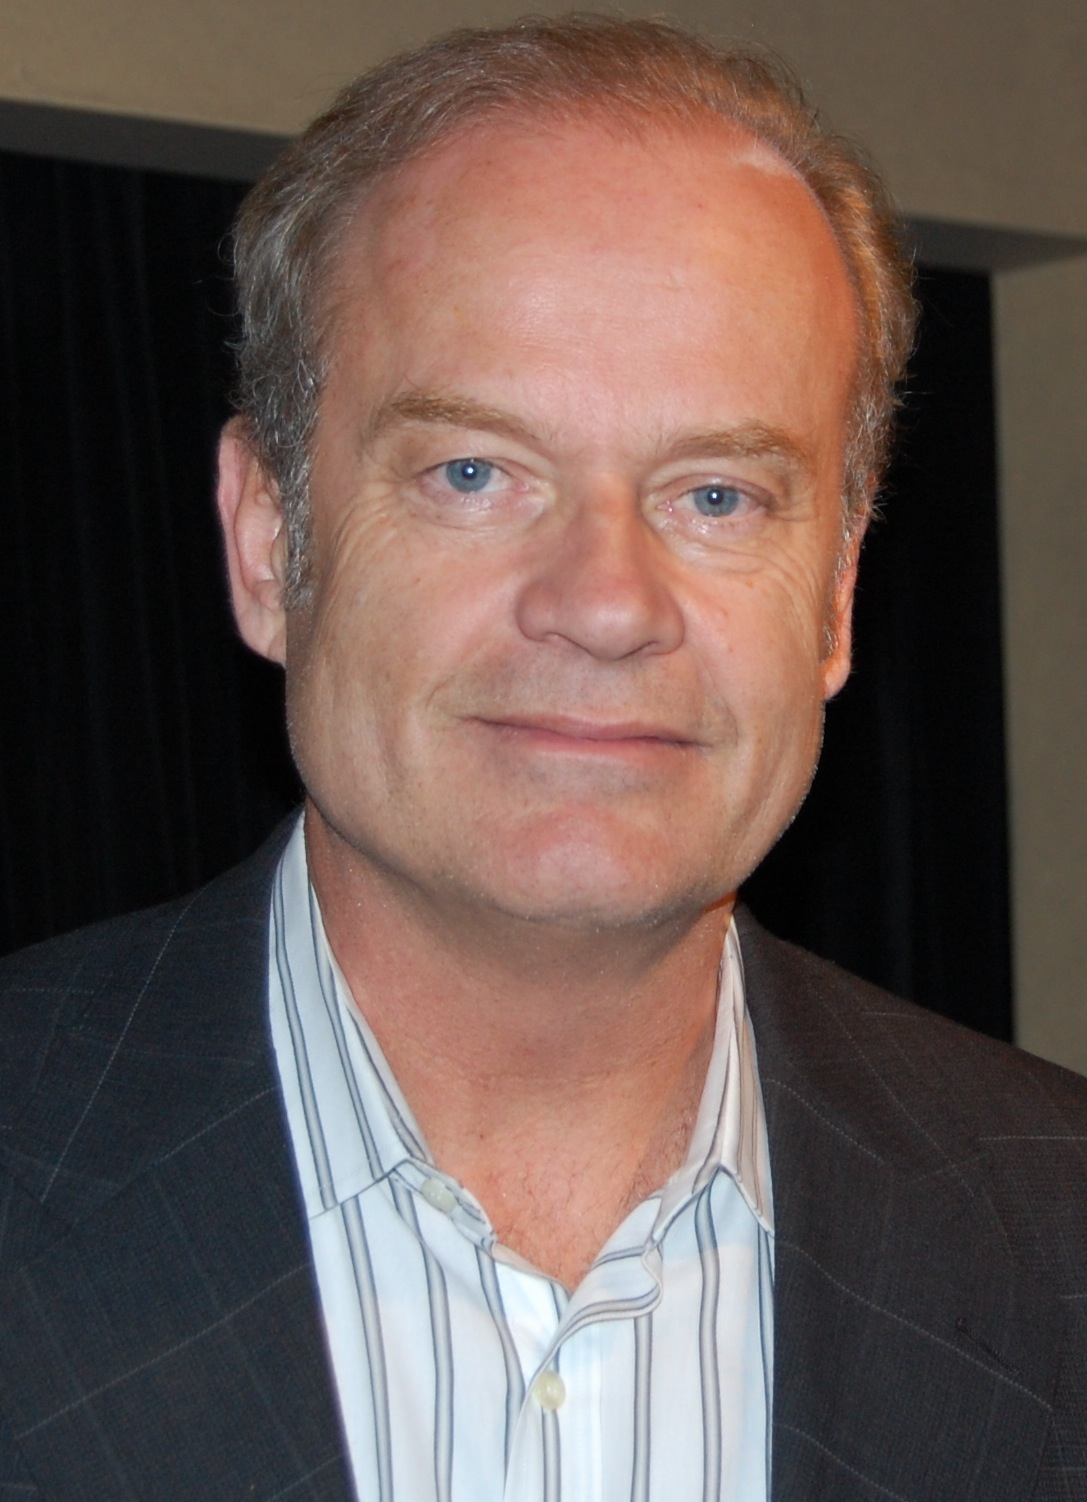 Kelsey_Grammer_May_2010_(cropped)